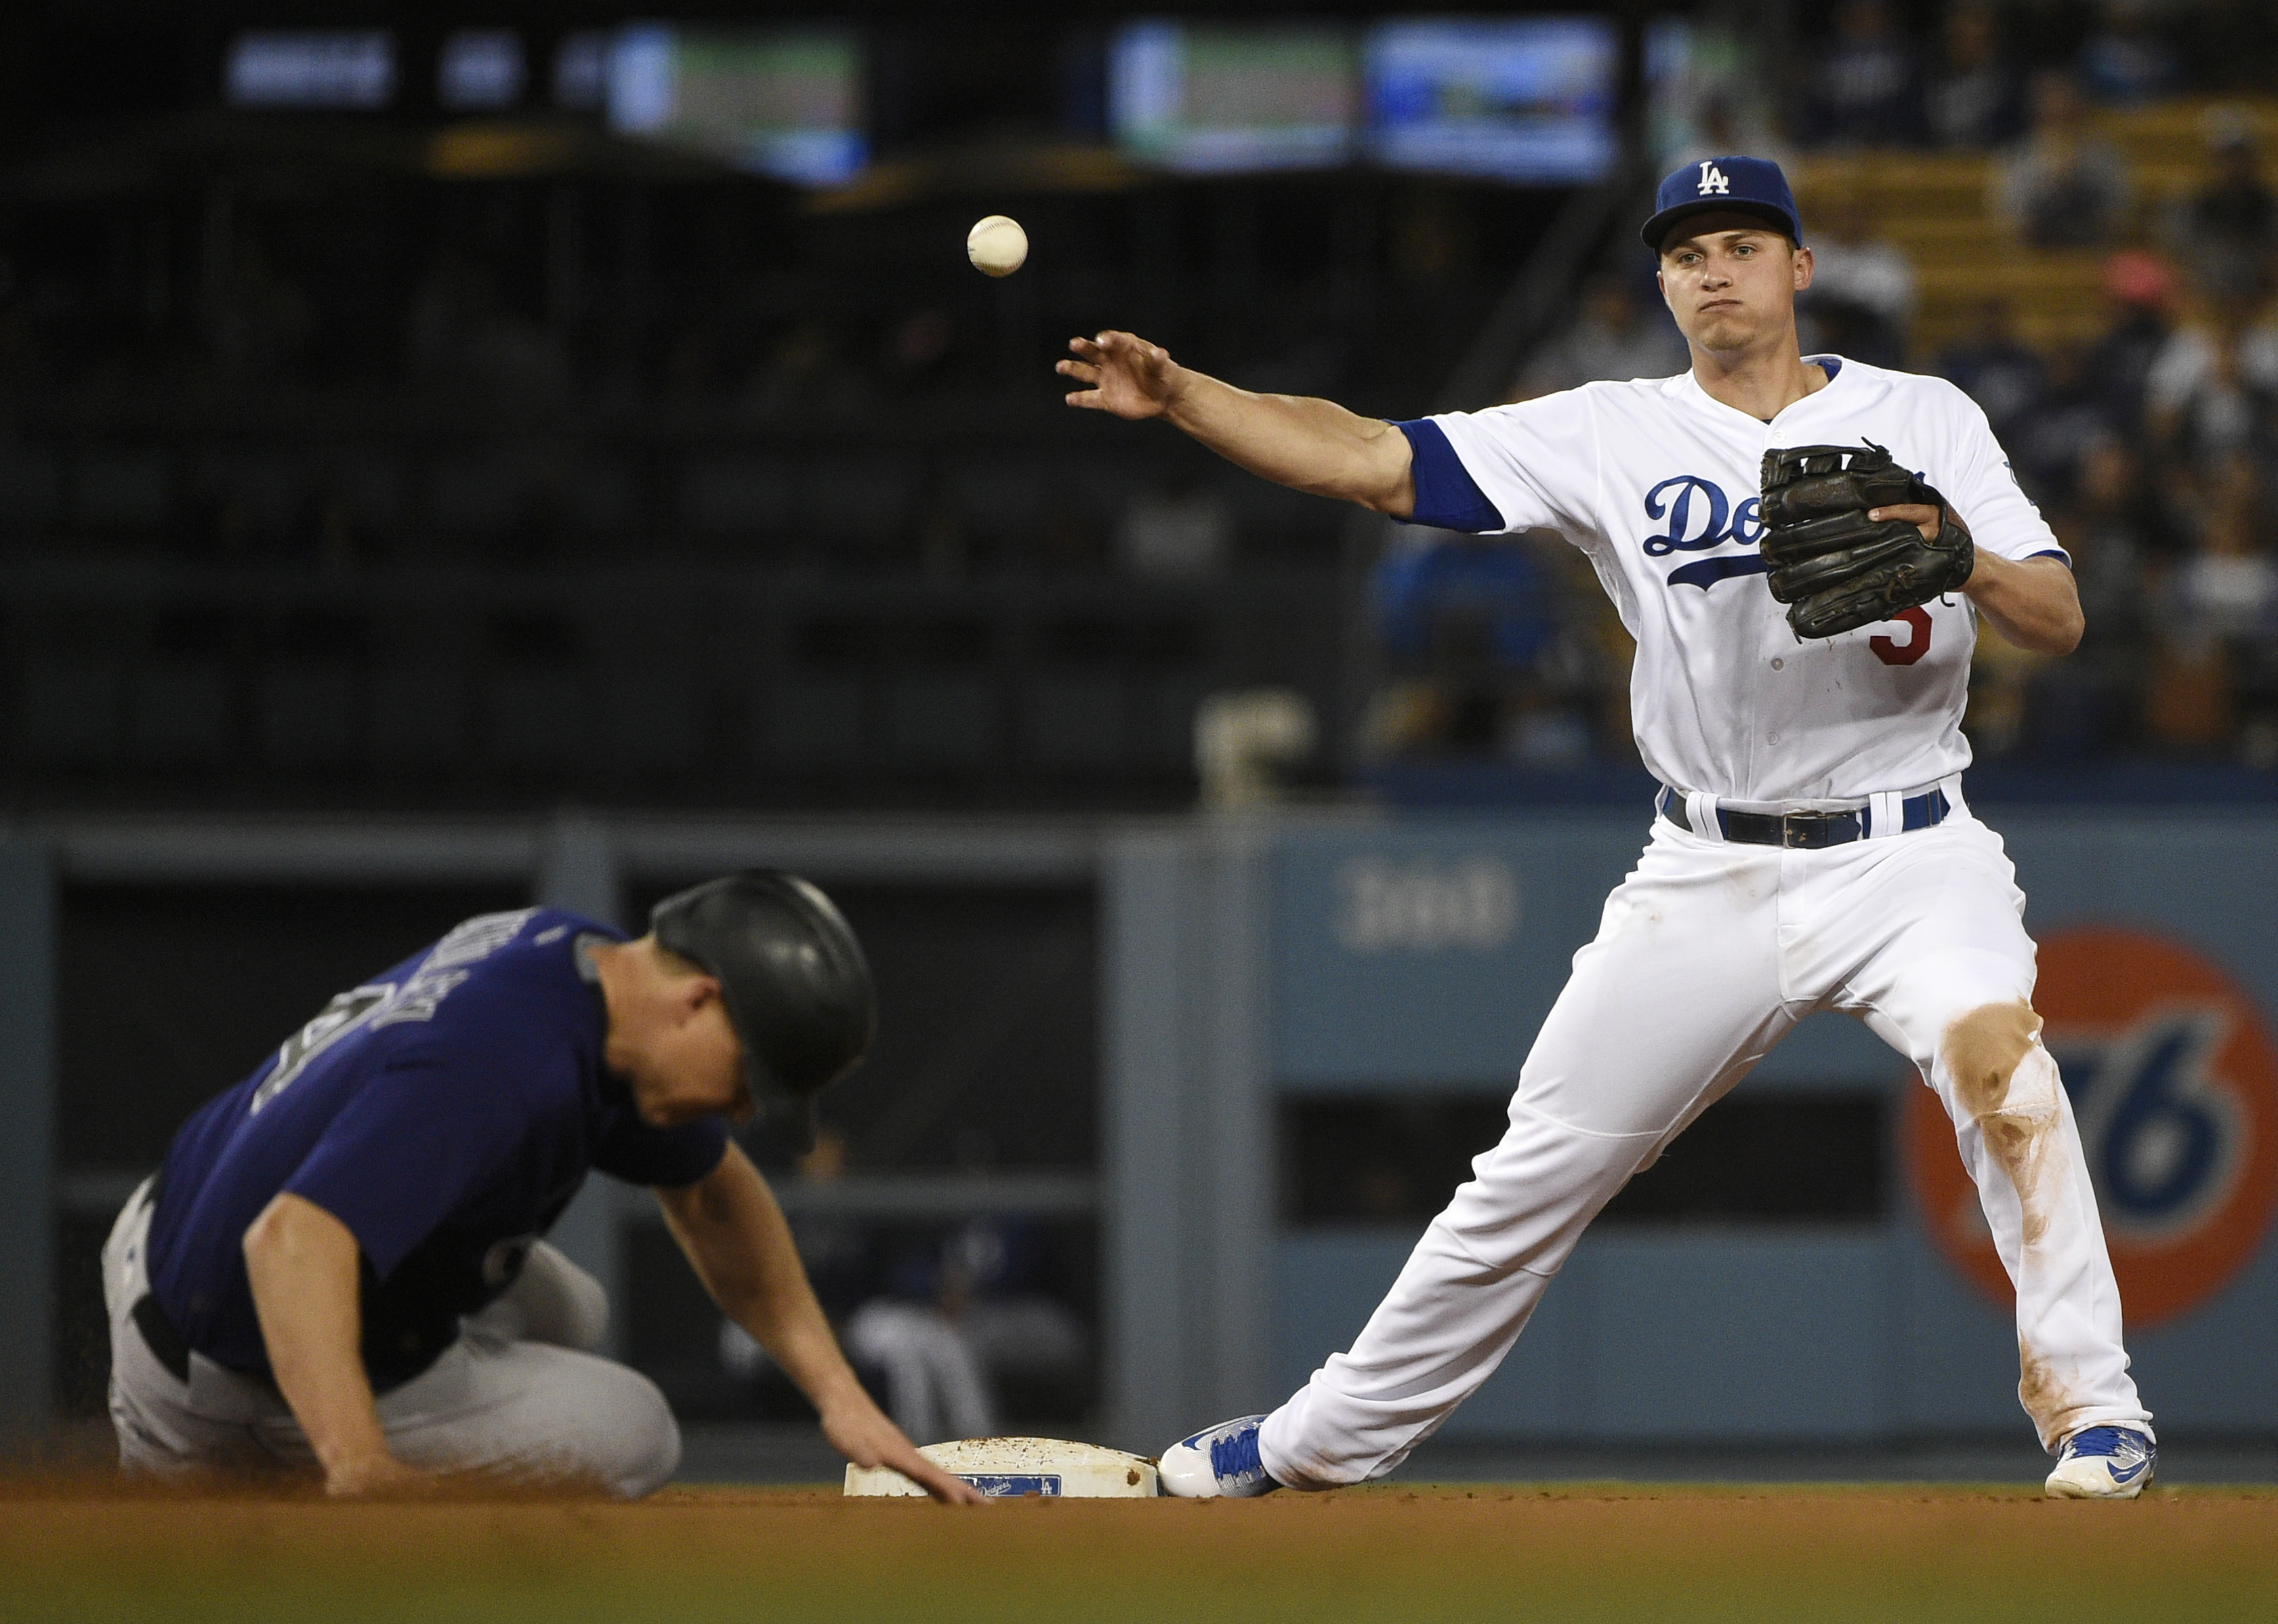 Los Angeles Dodgers shortstop Corey Seager, right, throws to first to complete a double play while Colorado Rockies' Nick Hundley, left, slide into second during the fifth inning of a baseball game in Los Angeles, Monday, June 6, 2016. (AP Photo/Kelvin Ku